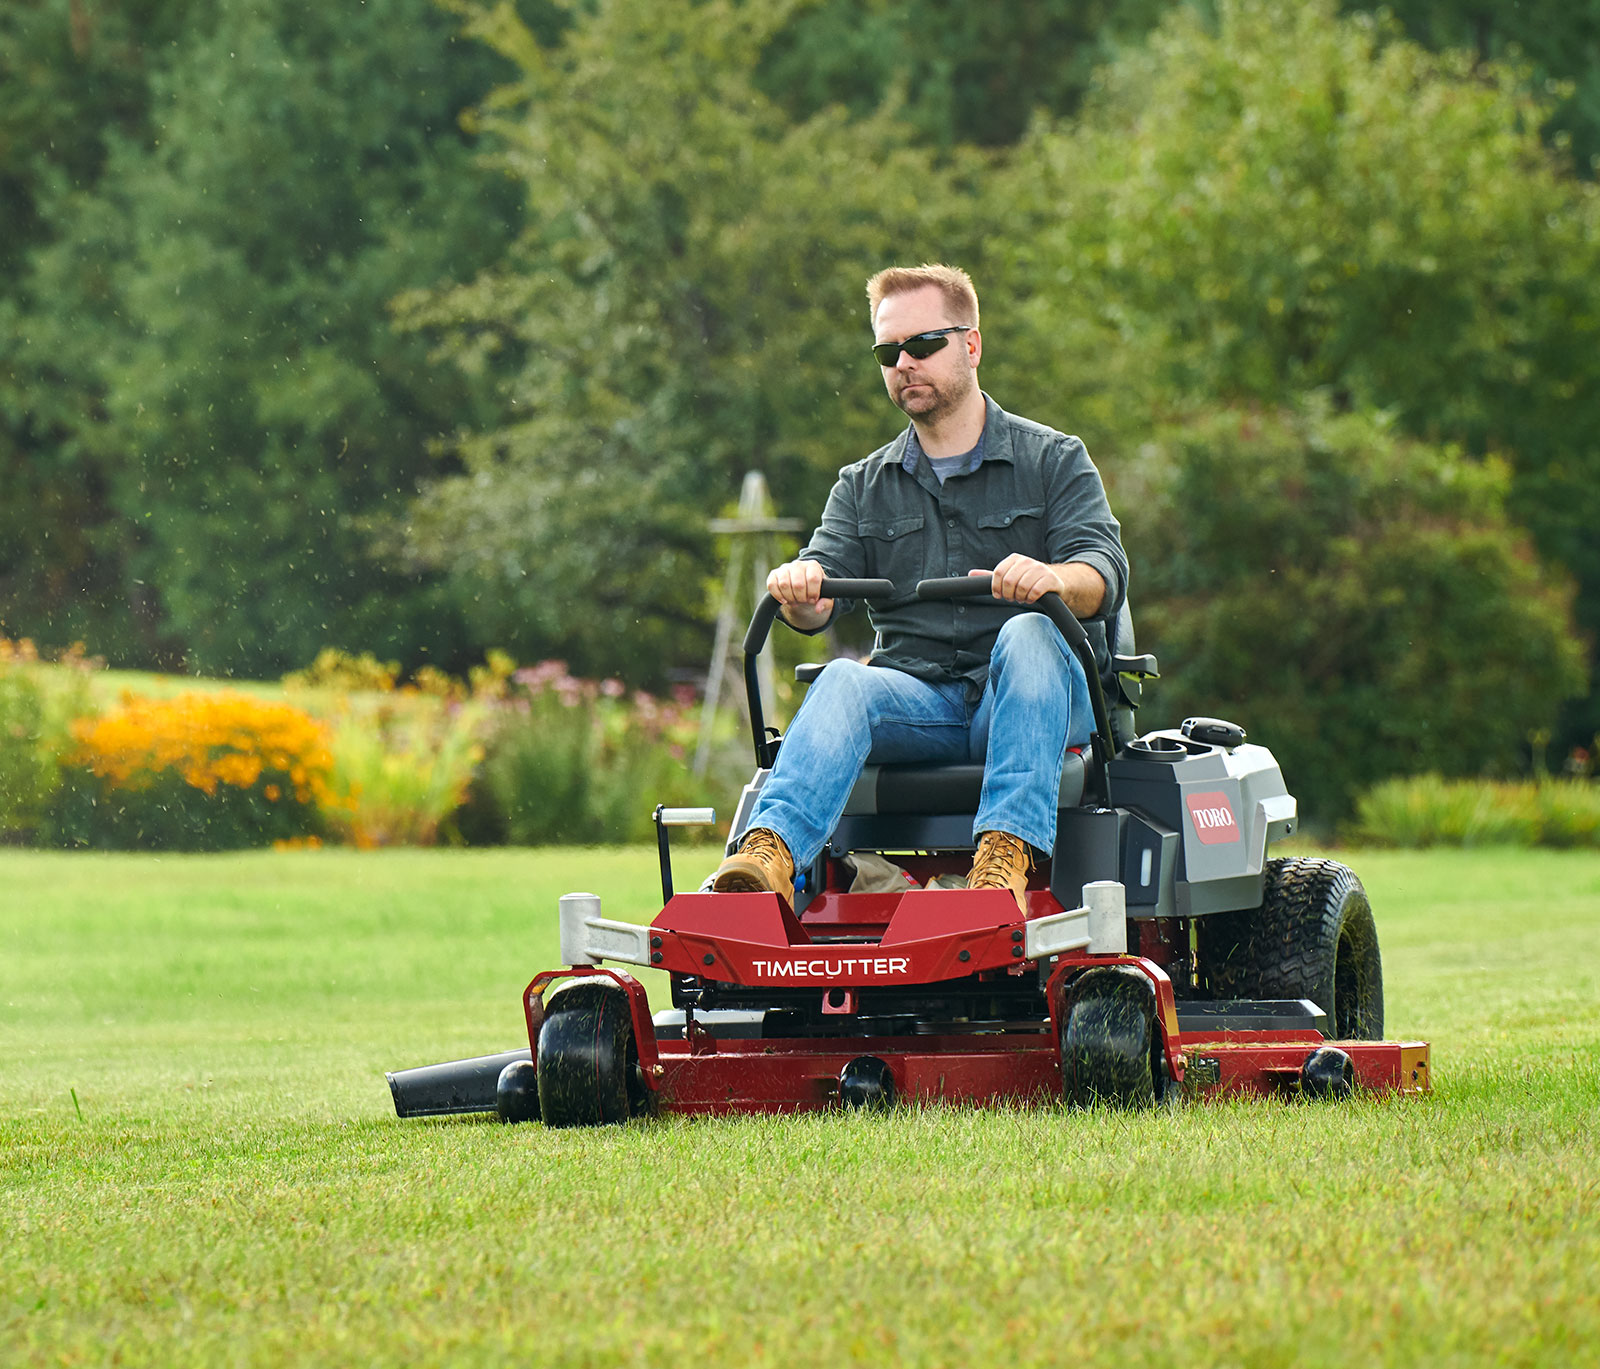 Toro TimeCutter and Titan zero turn mowers